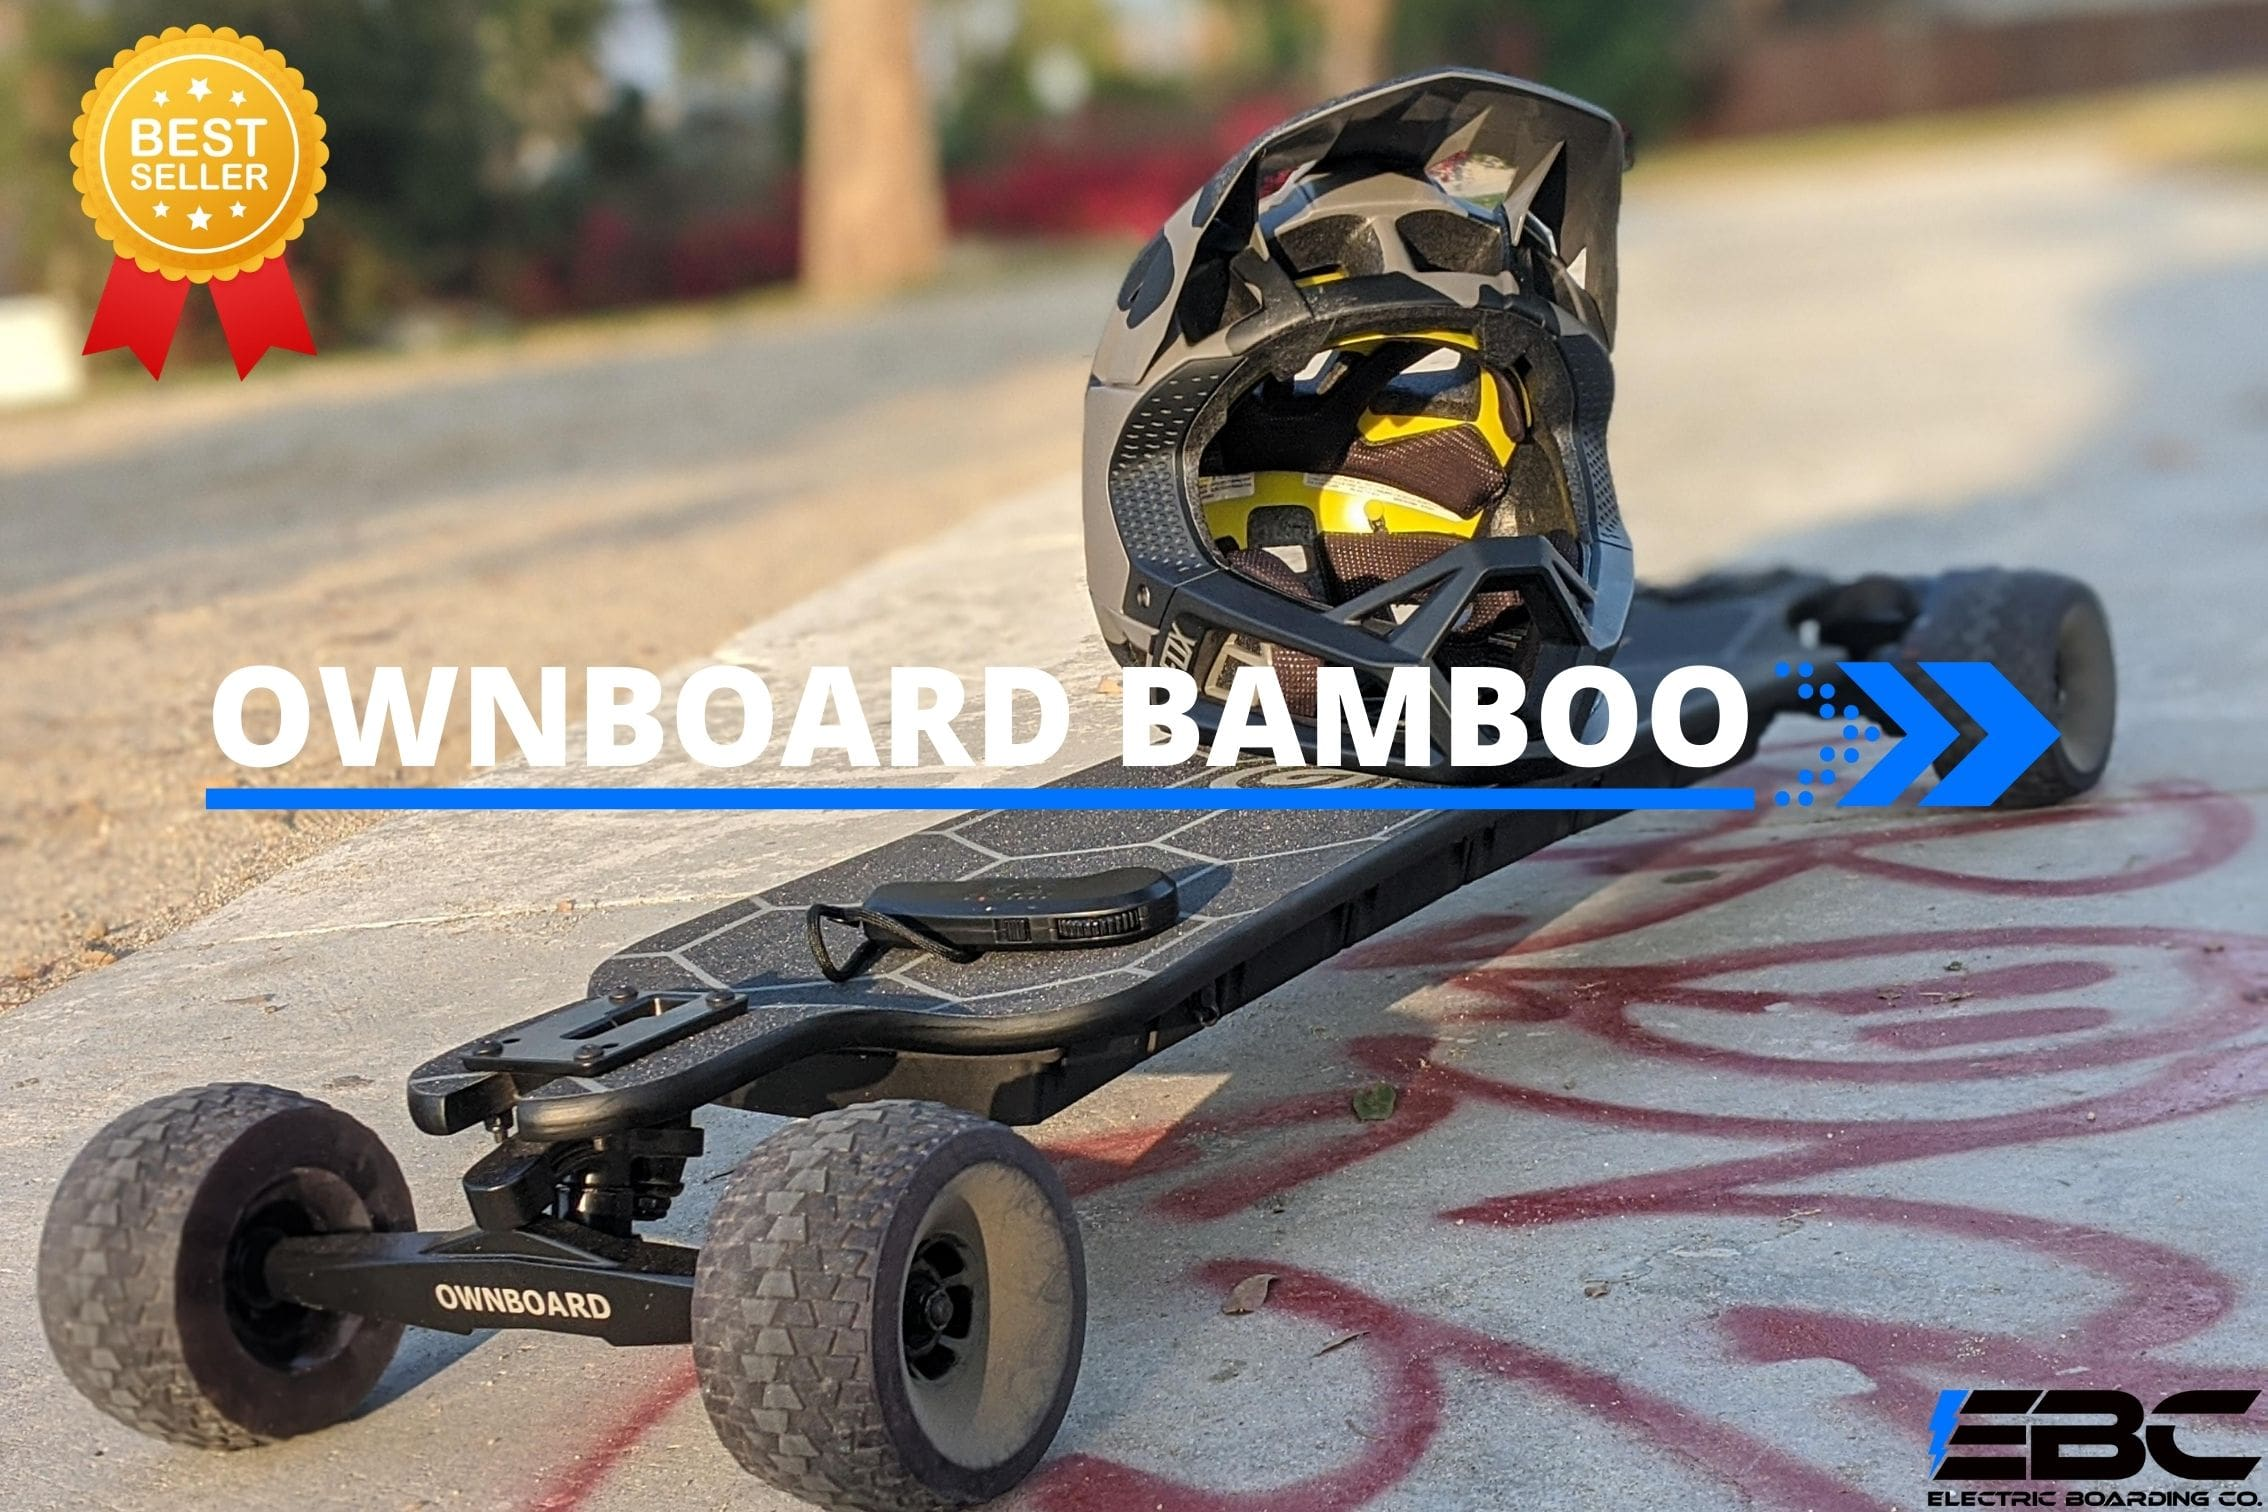 Ownboard Bamboo